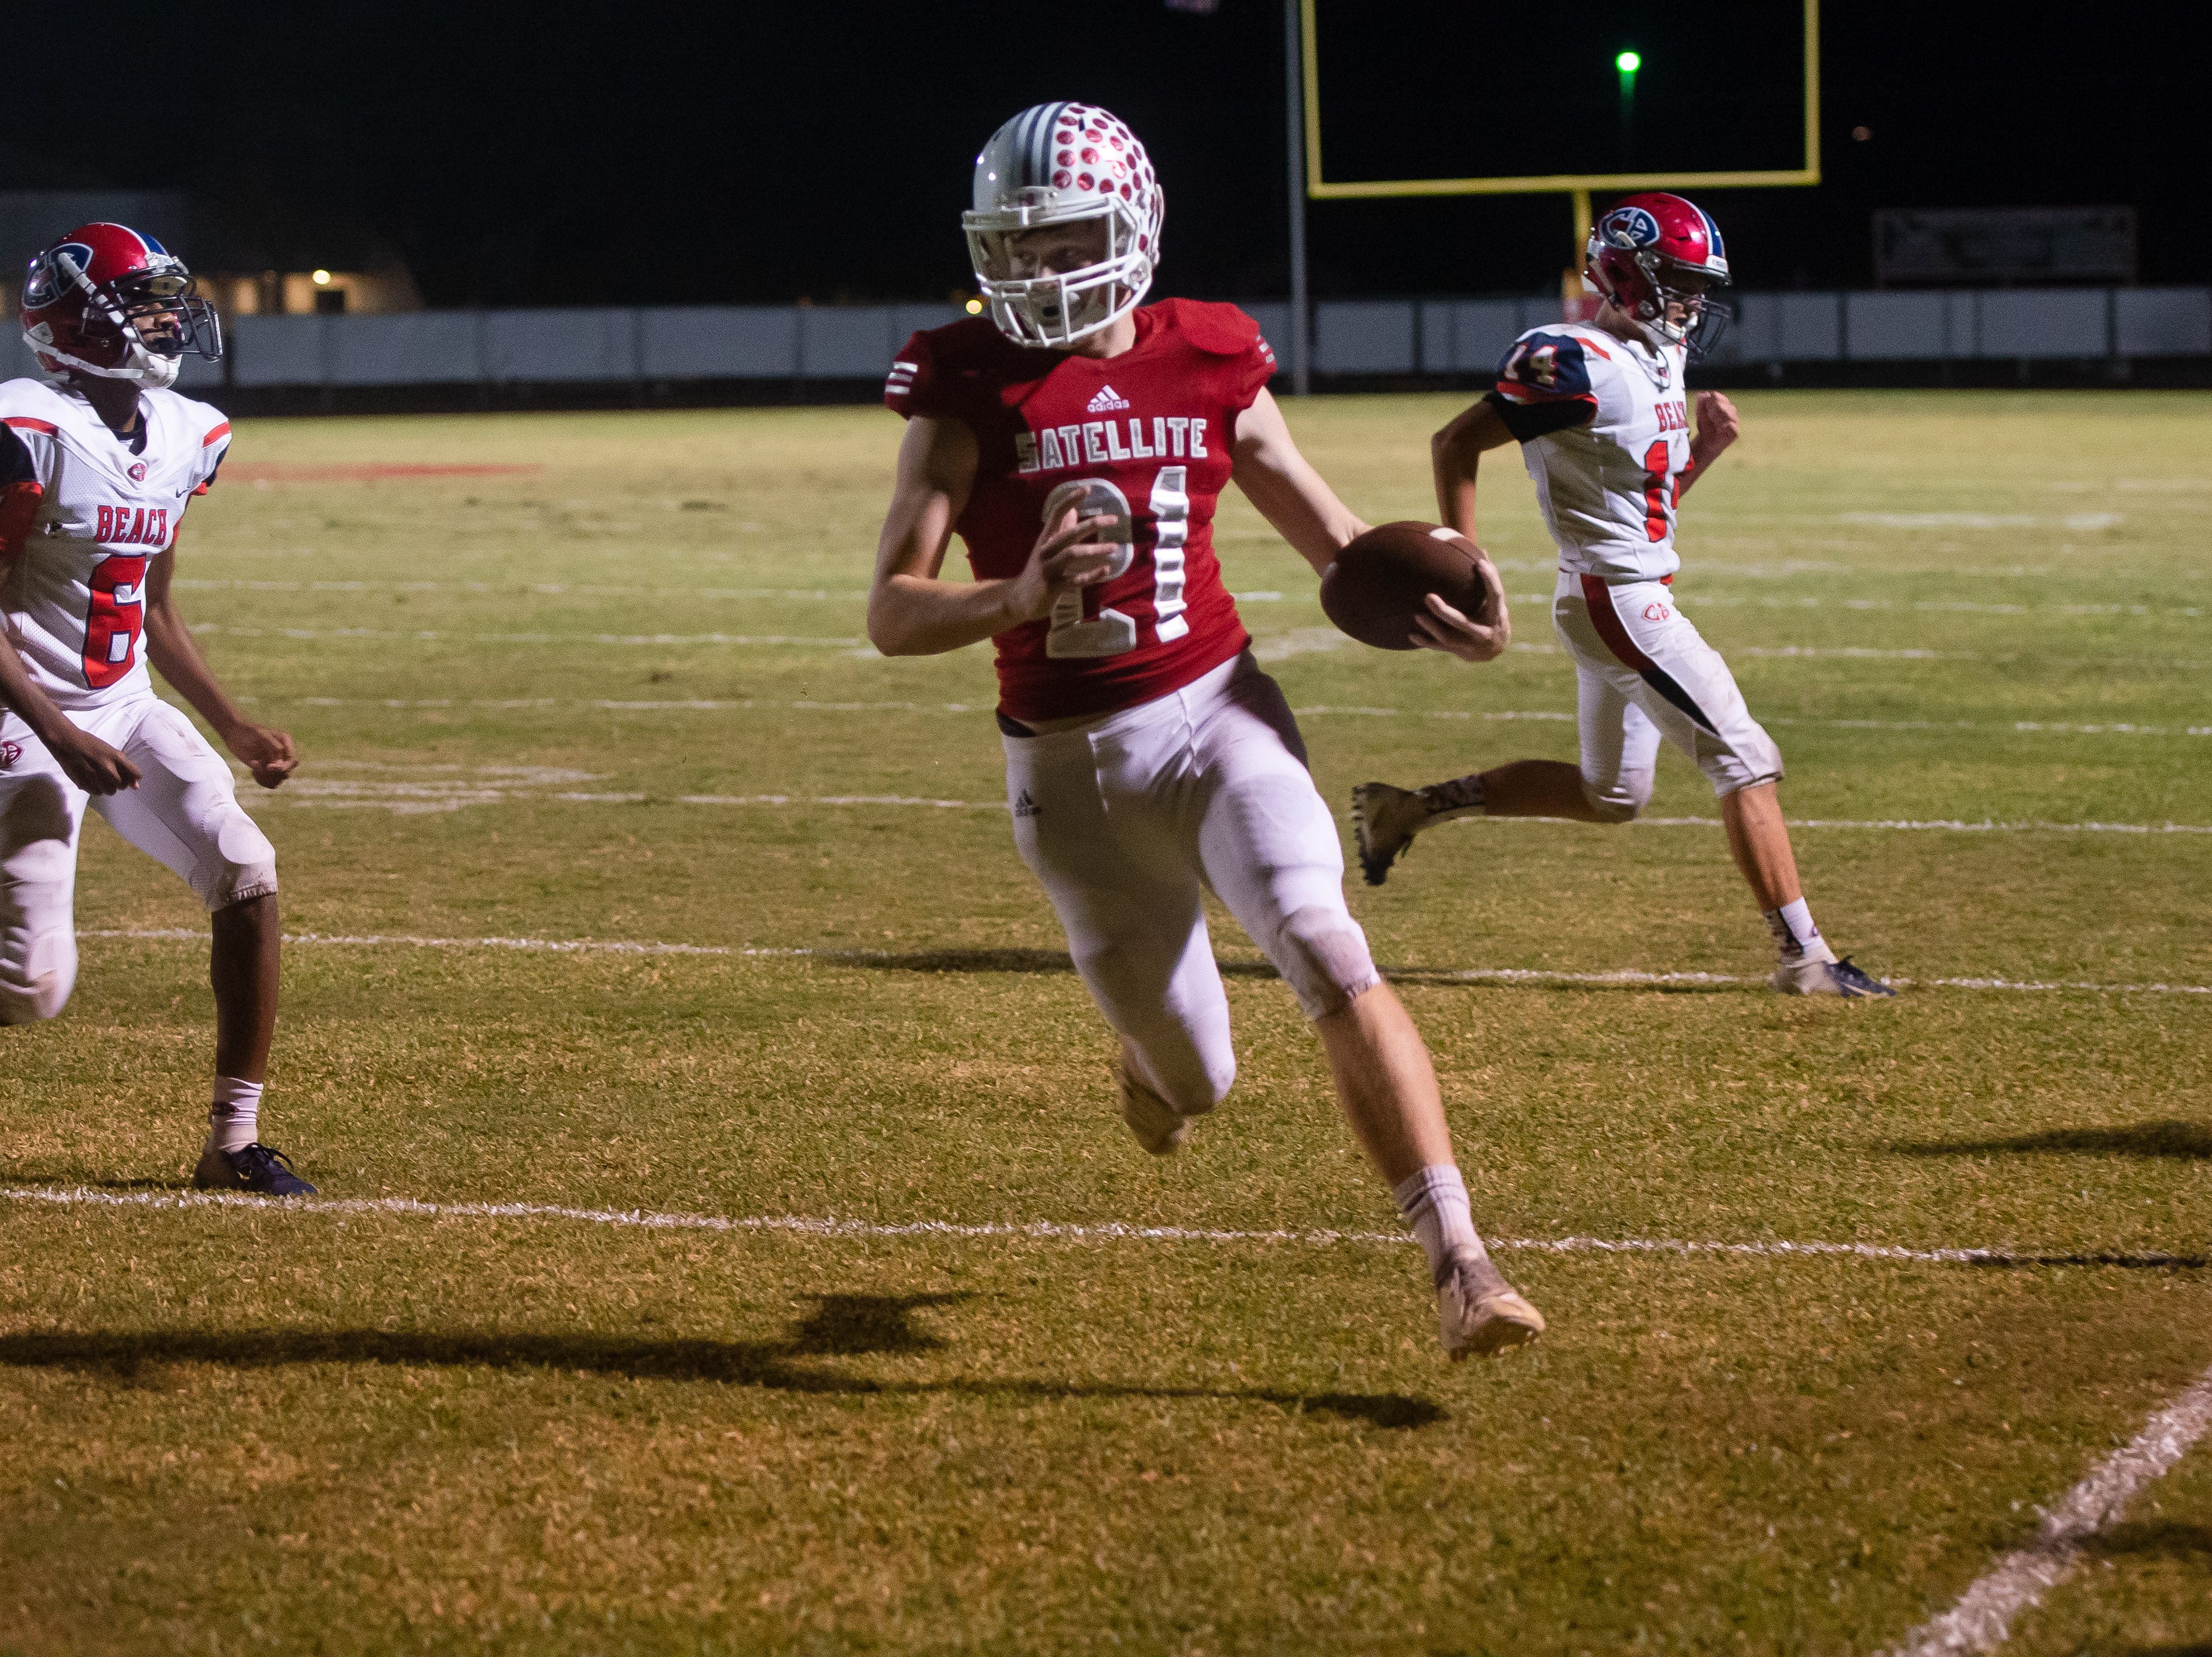 Trey Brown scores a two-point conversion for Satellite High during the game against Cocoa Beach.